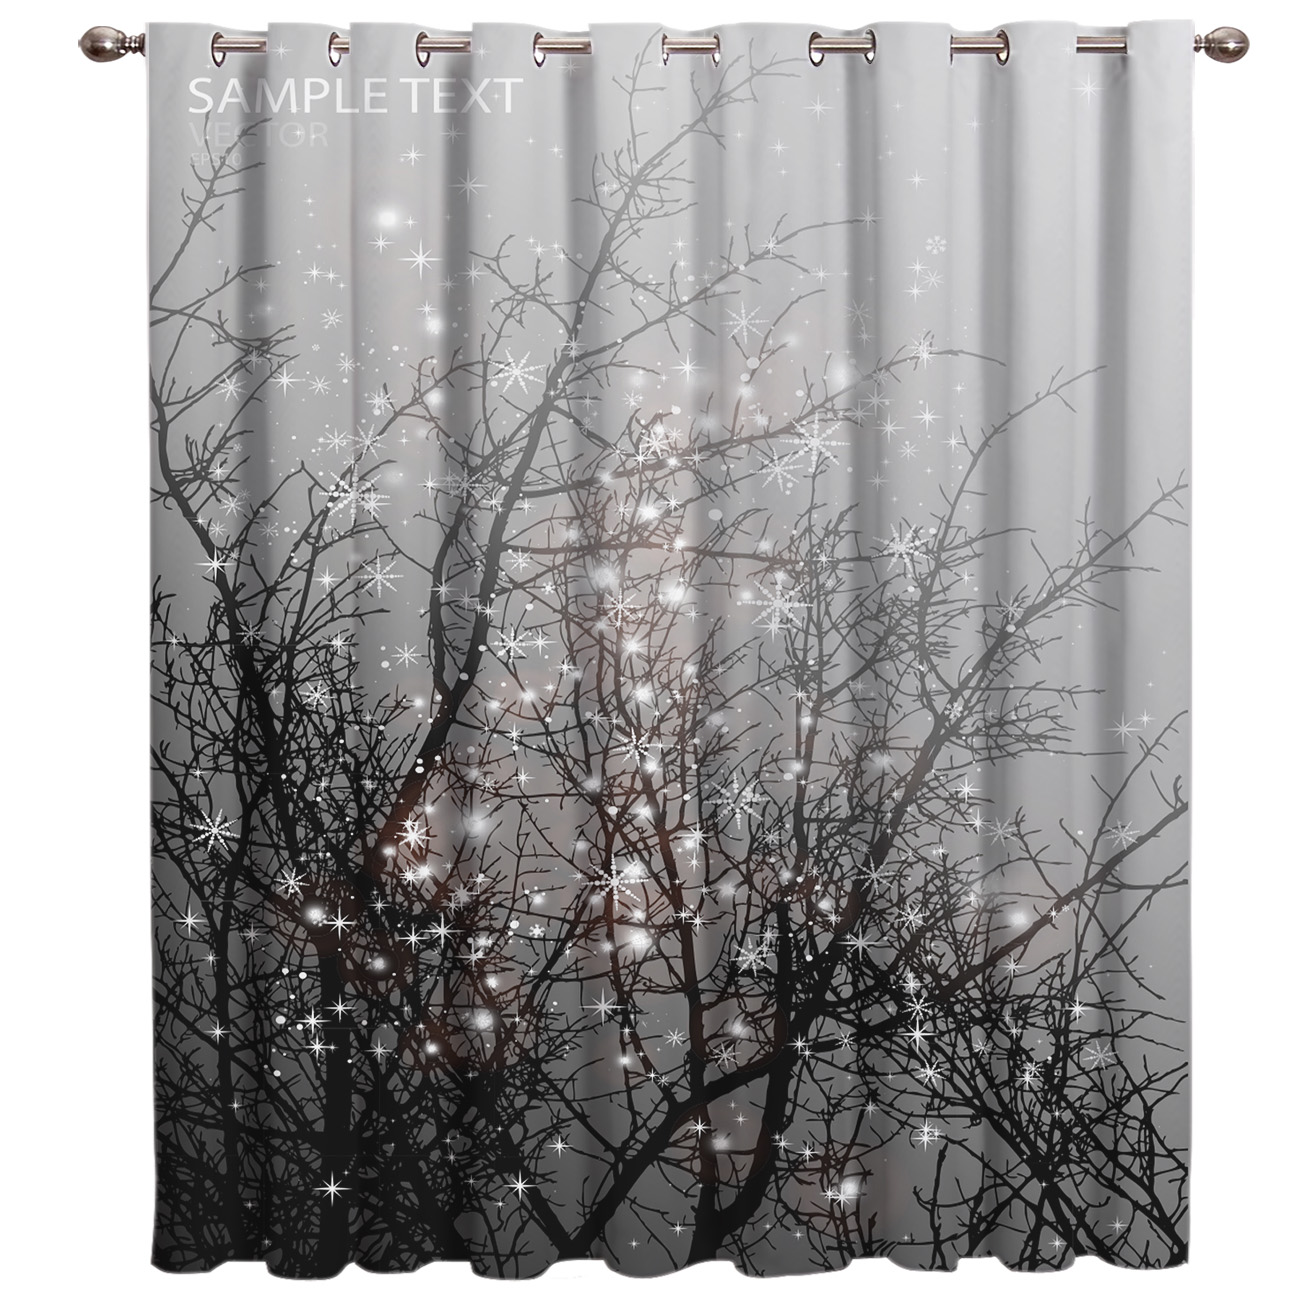 Christams Night Branch Snow Room Curtains Large Window Curtain Rod Blackout Curtains Kitchen Decor Curtain Panels With Grommets